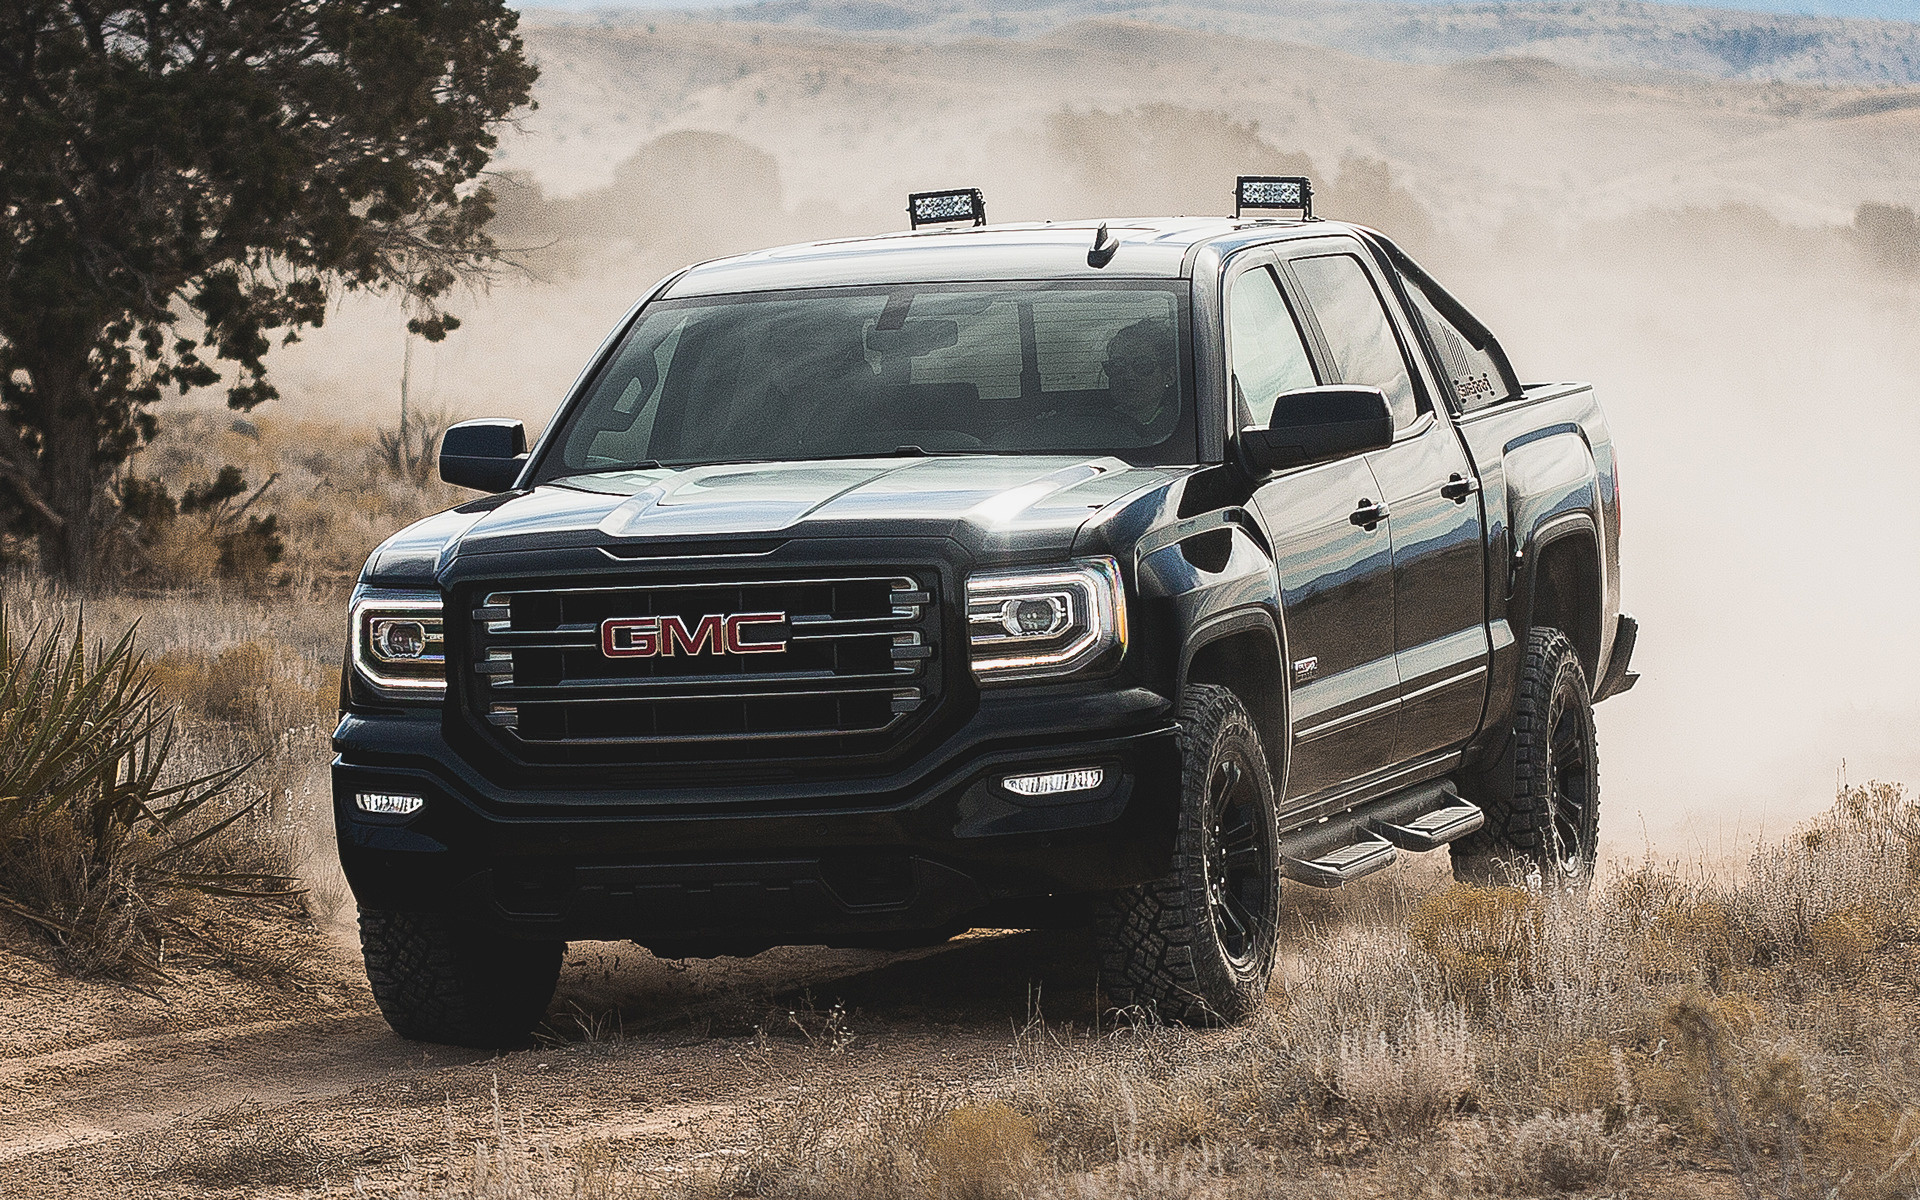 2016 GMC Sierra 1500 All Terrain X Crew Cab - Wallpapers ...